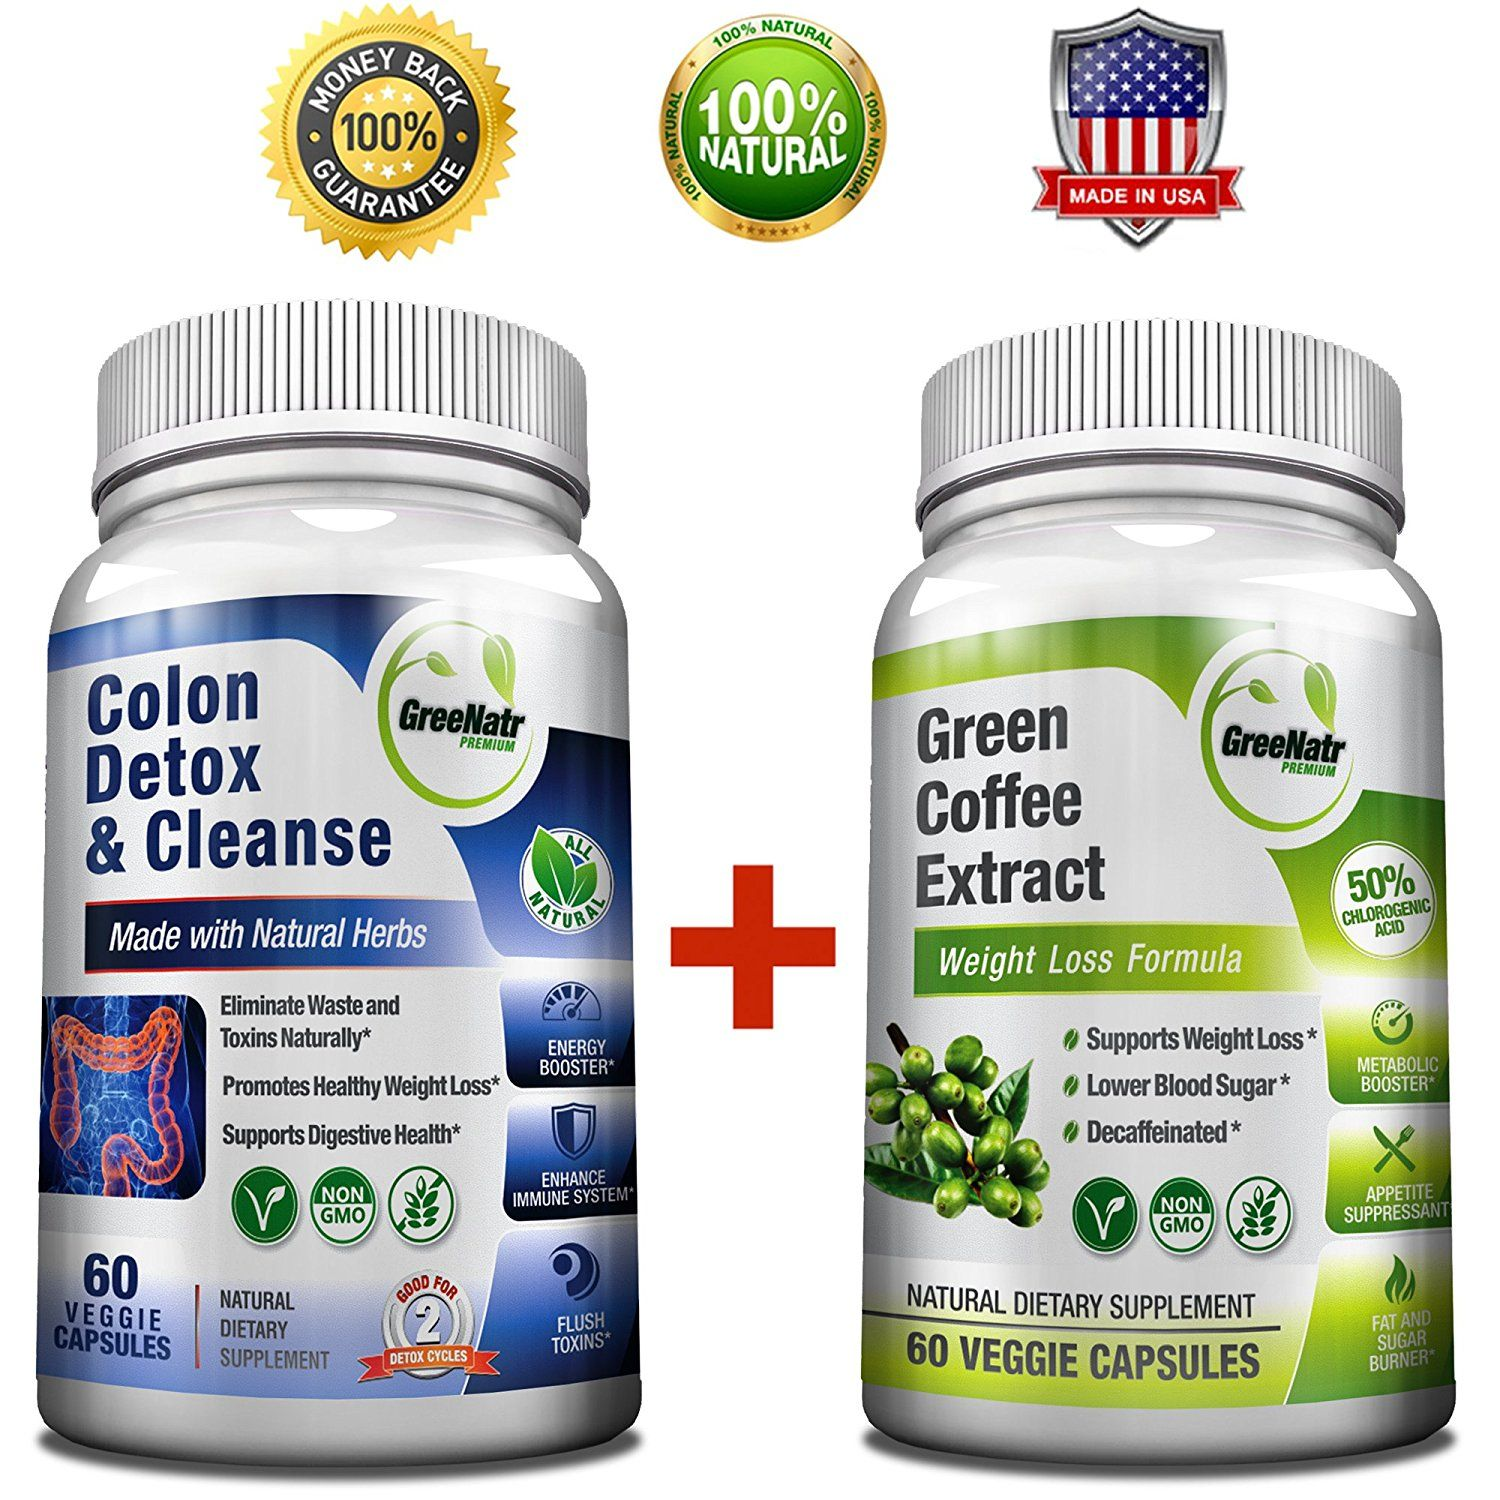 Prescription weight loss pills approved by the fda image 8